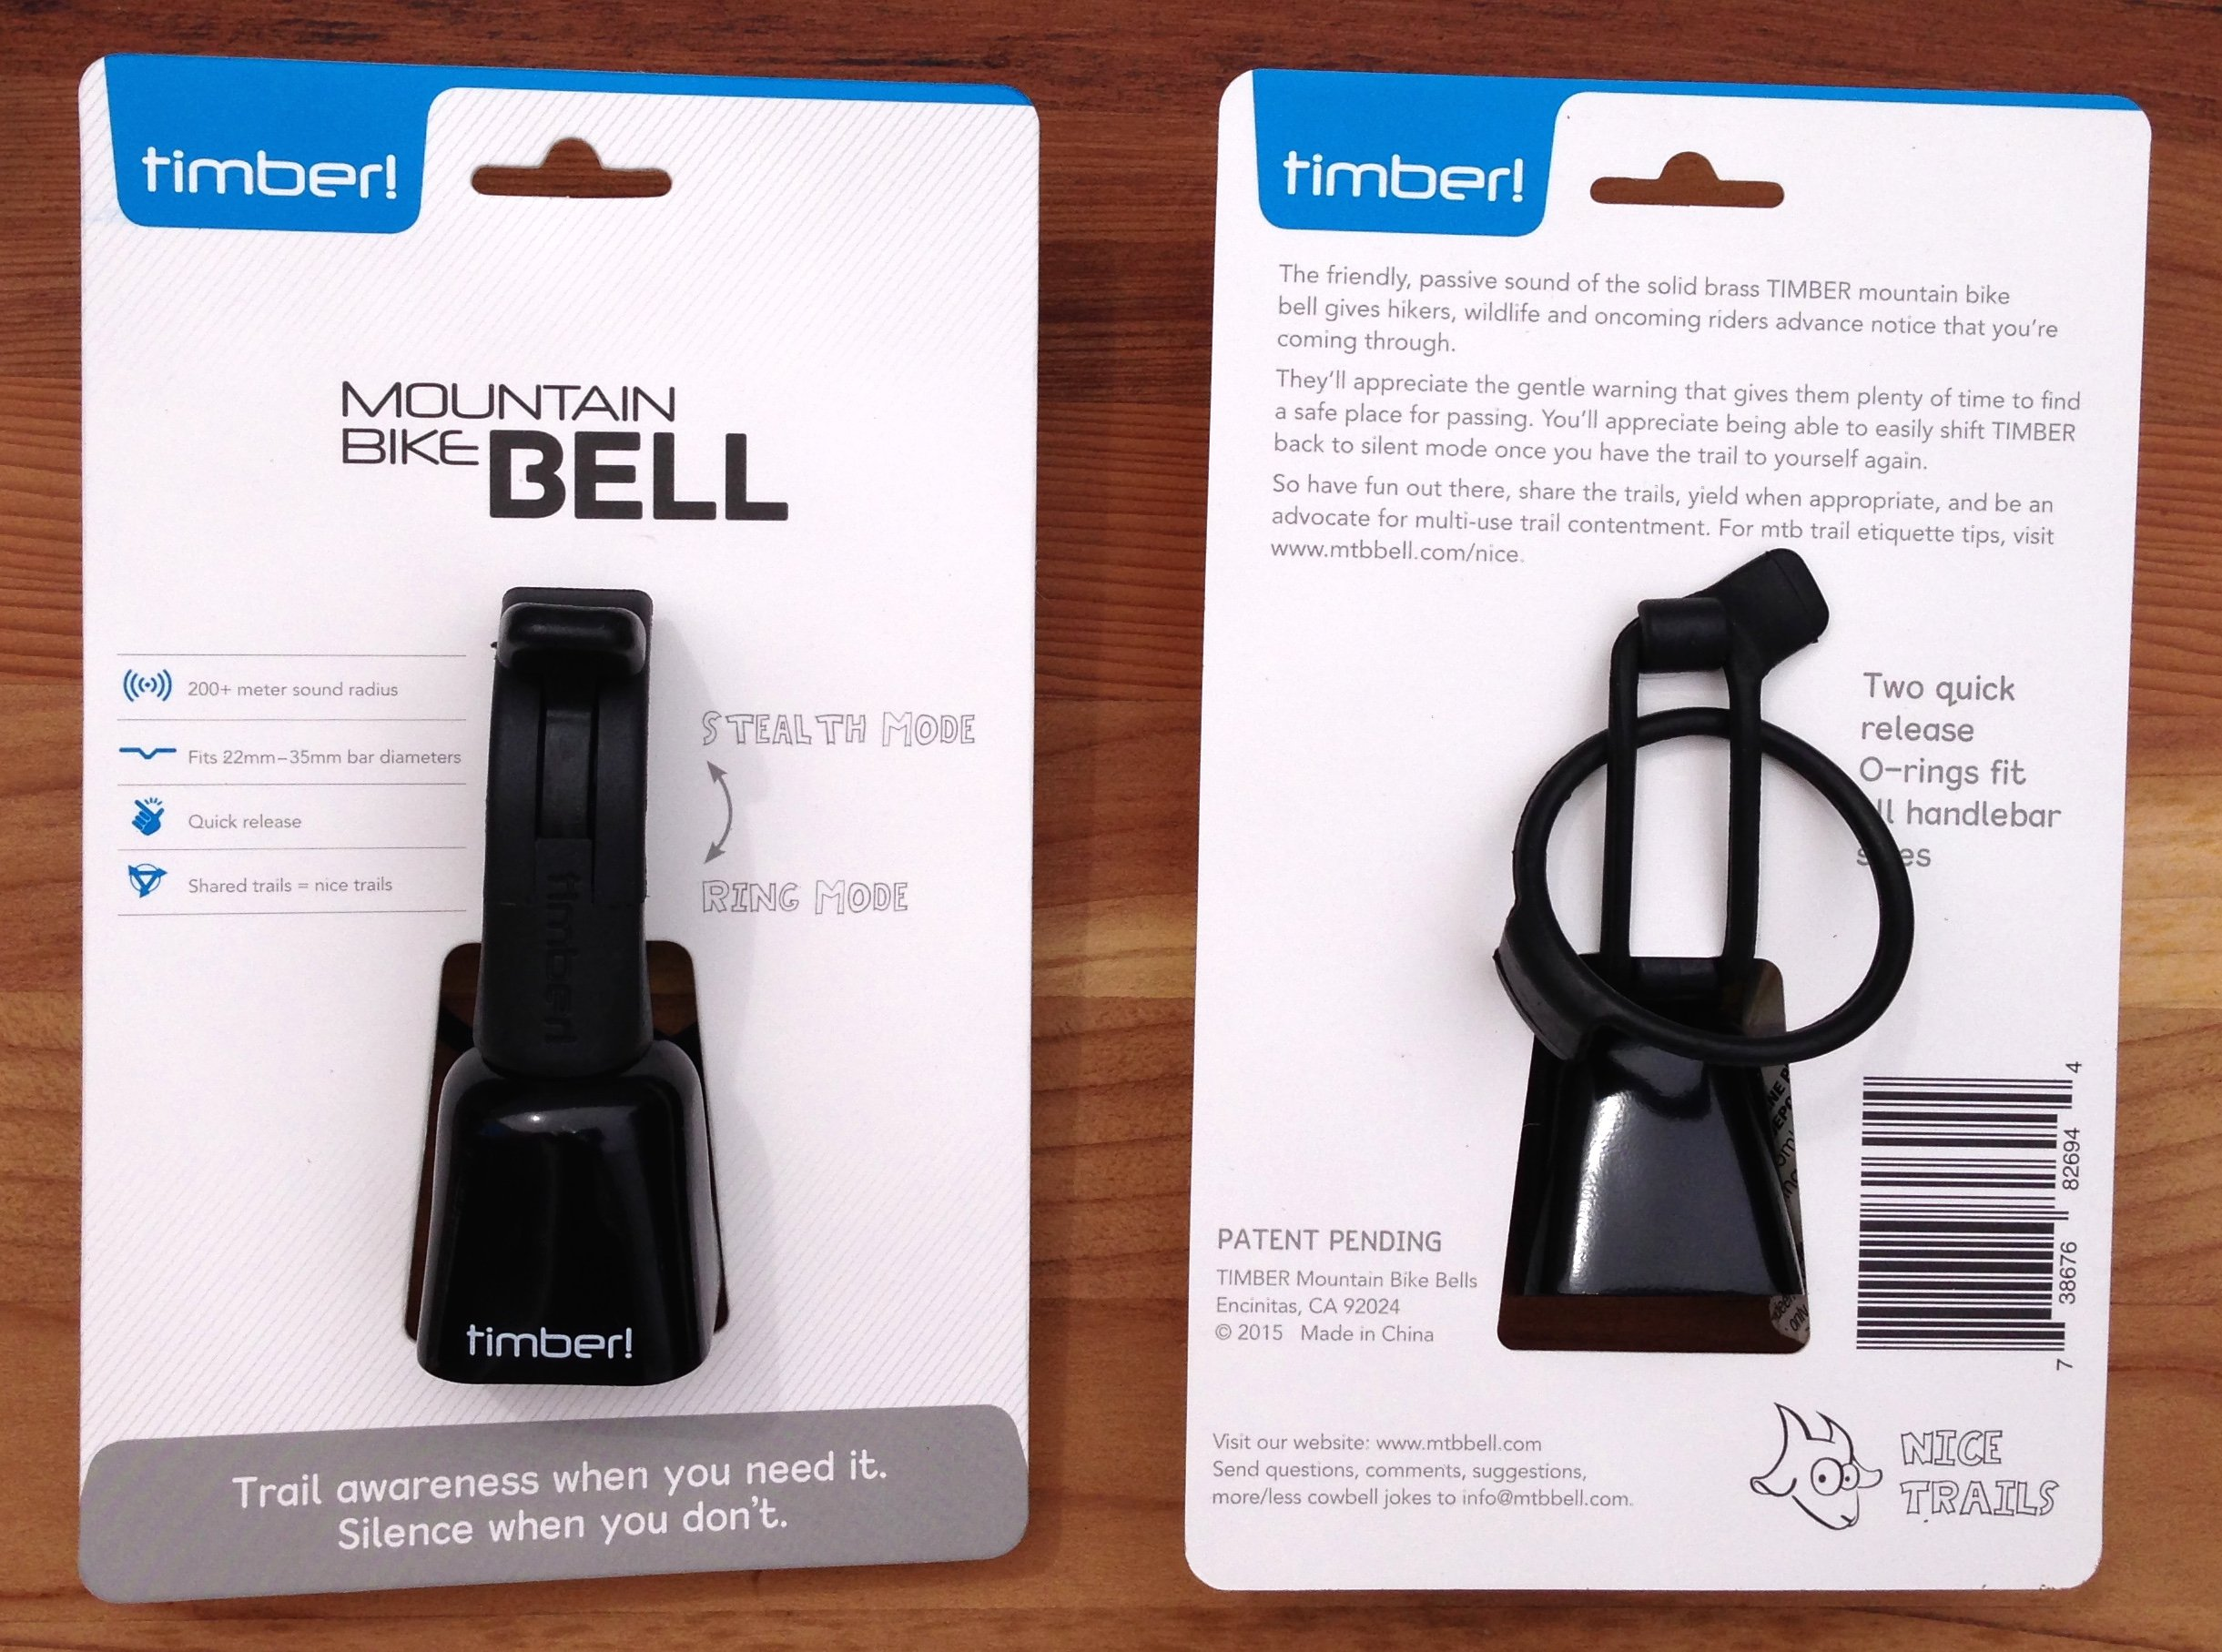 TIMBER! Mountain Bike Bell - Quick Release Model